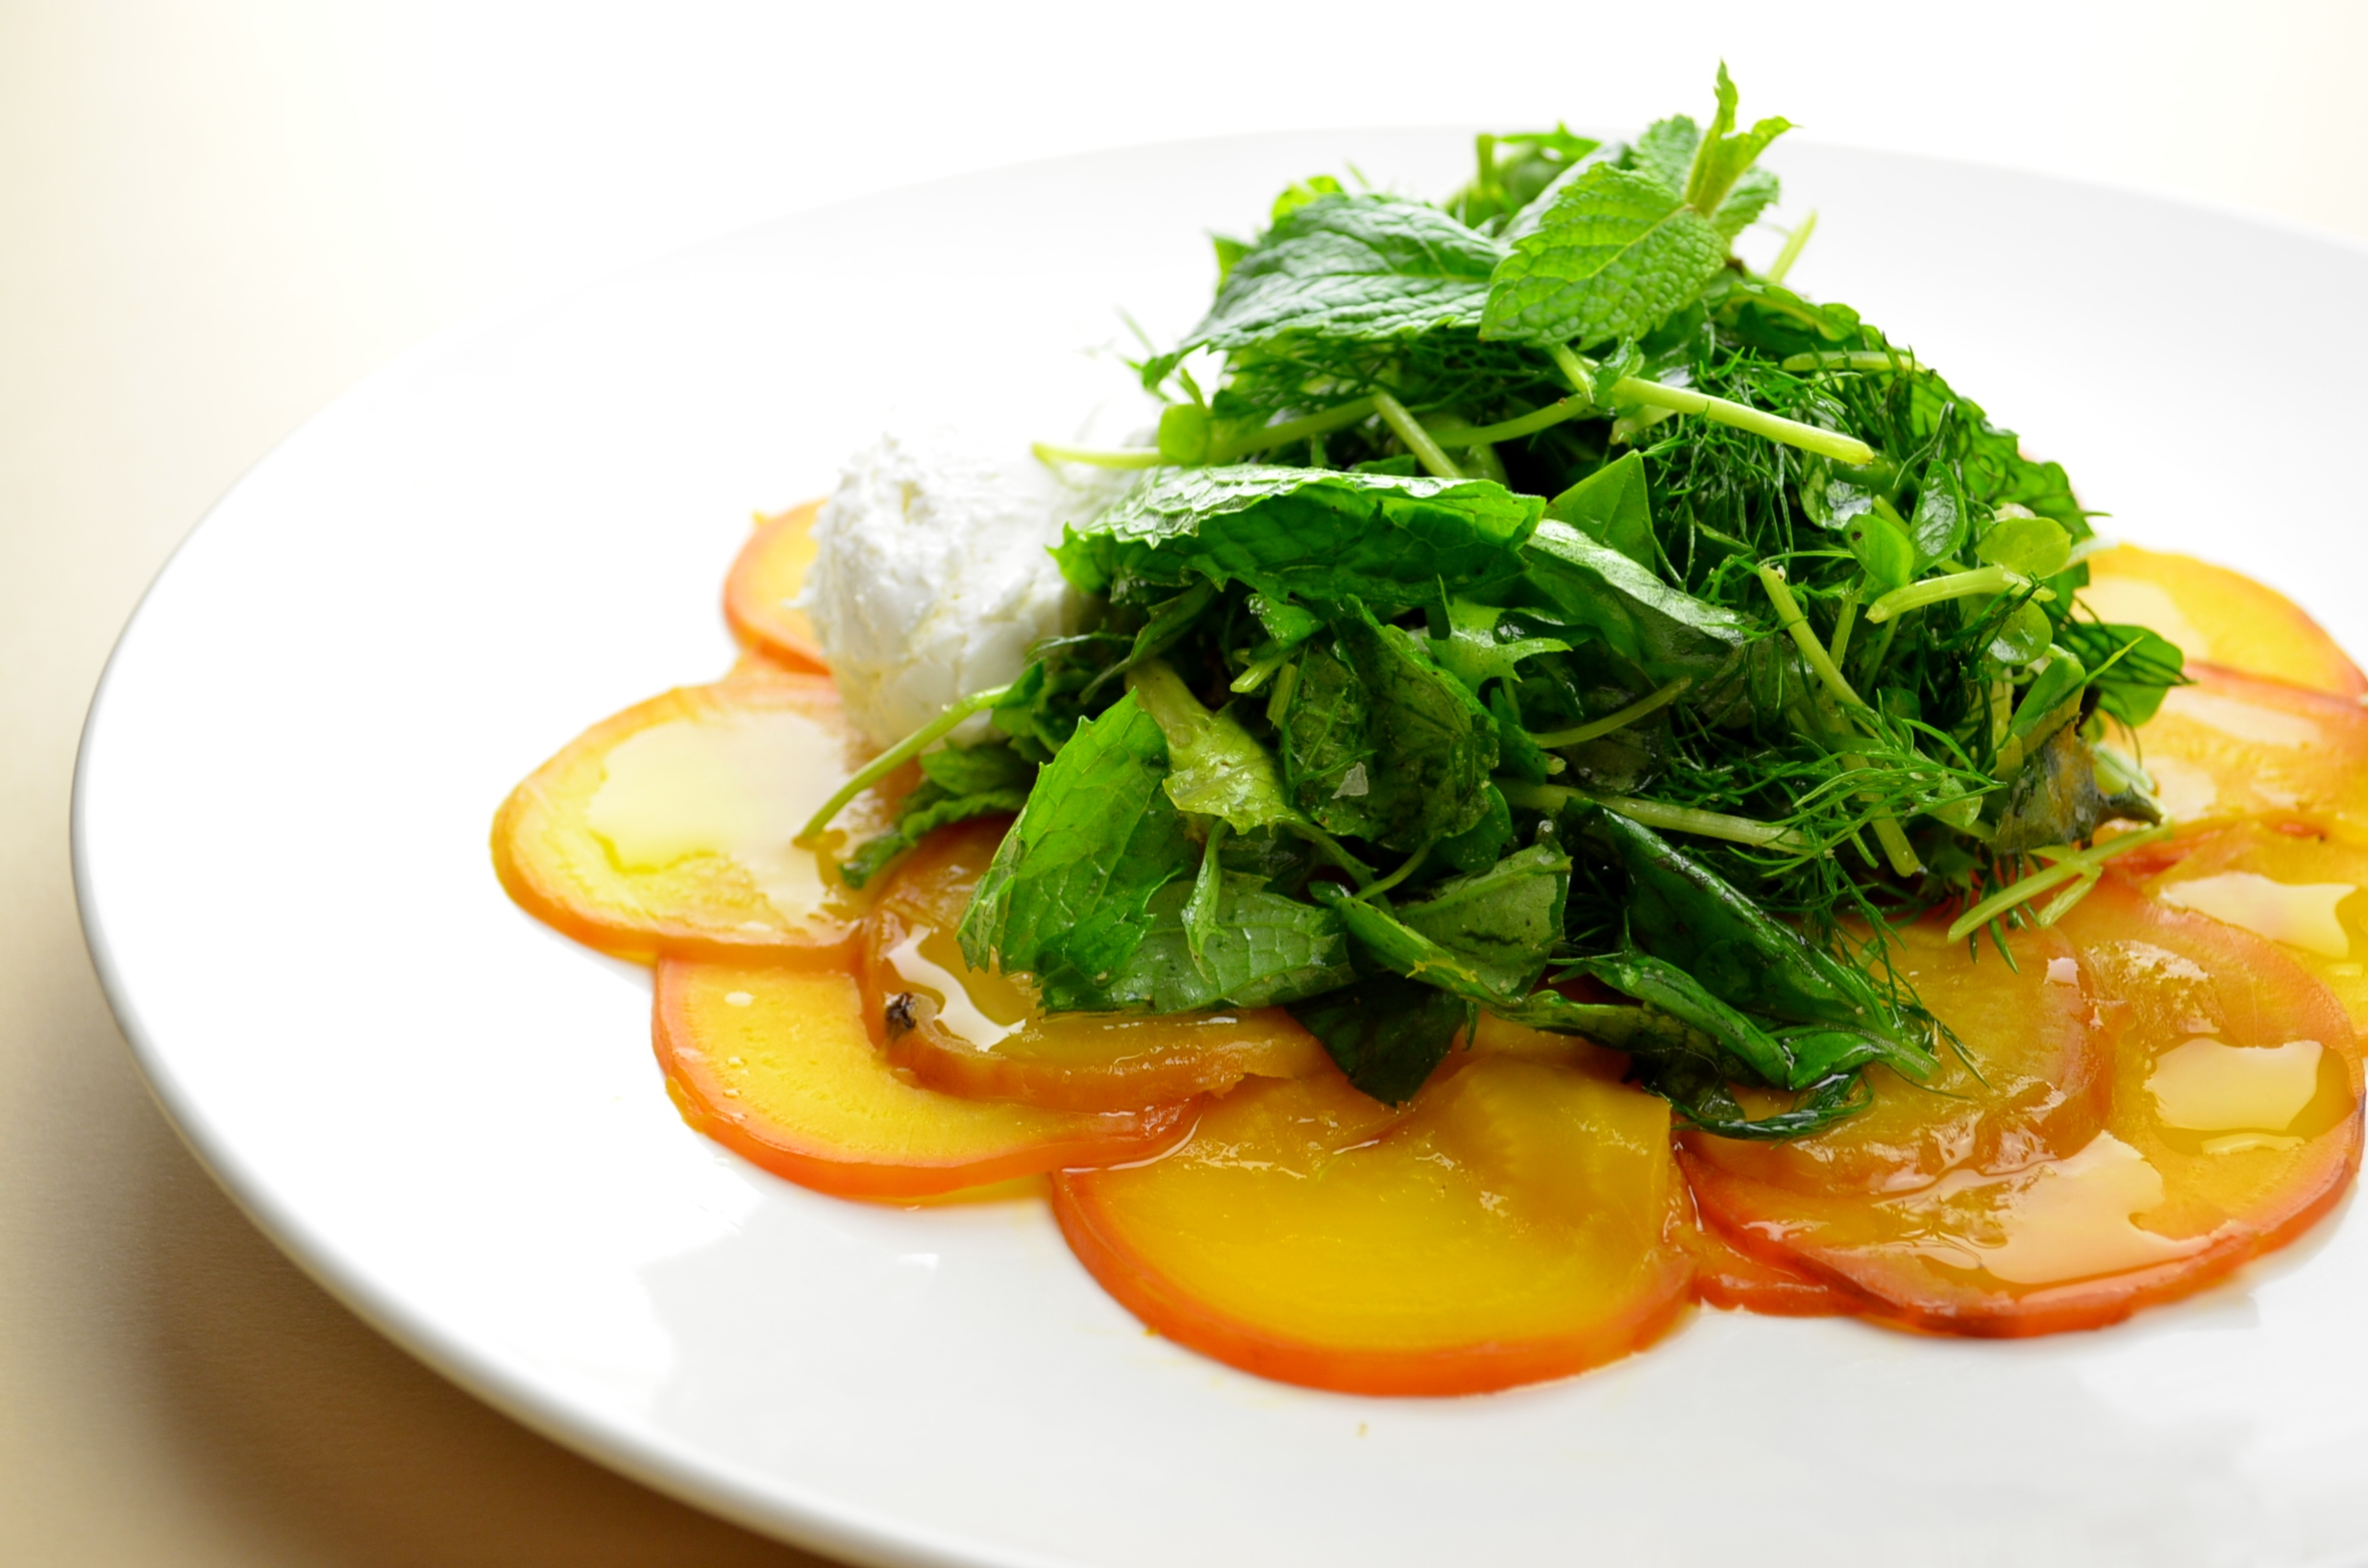 Beet carpaccio | Herb salad | Goat cheese quenelle | Mon Food Blog